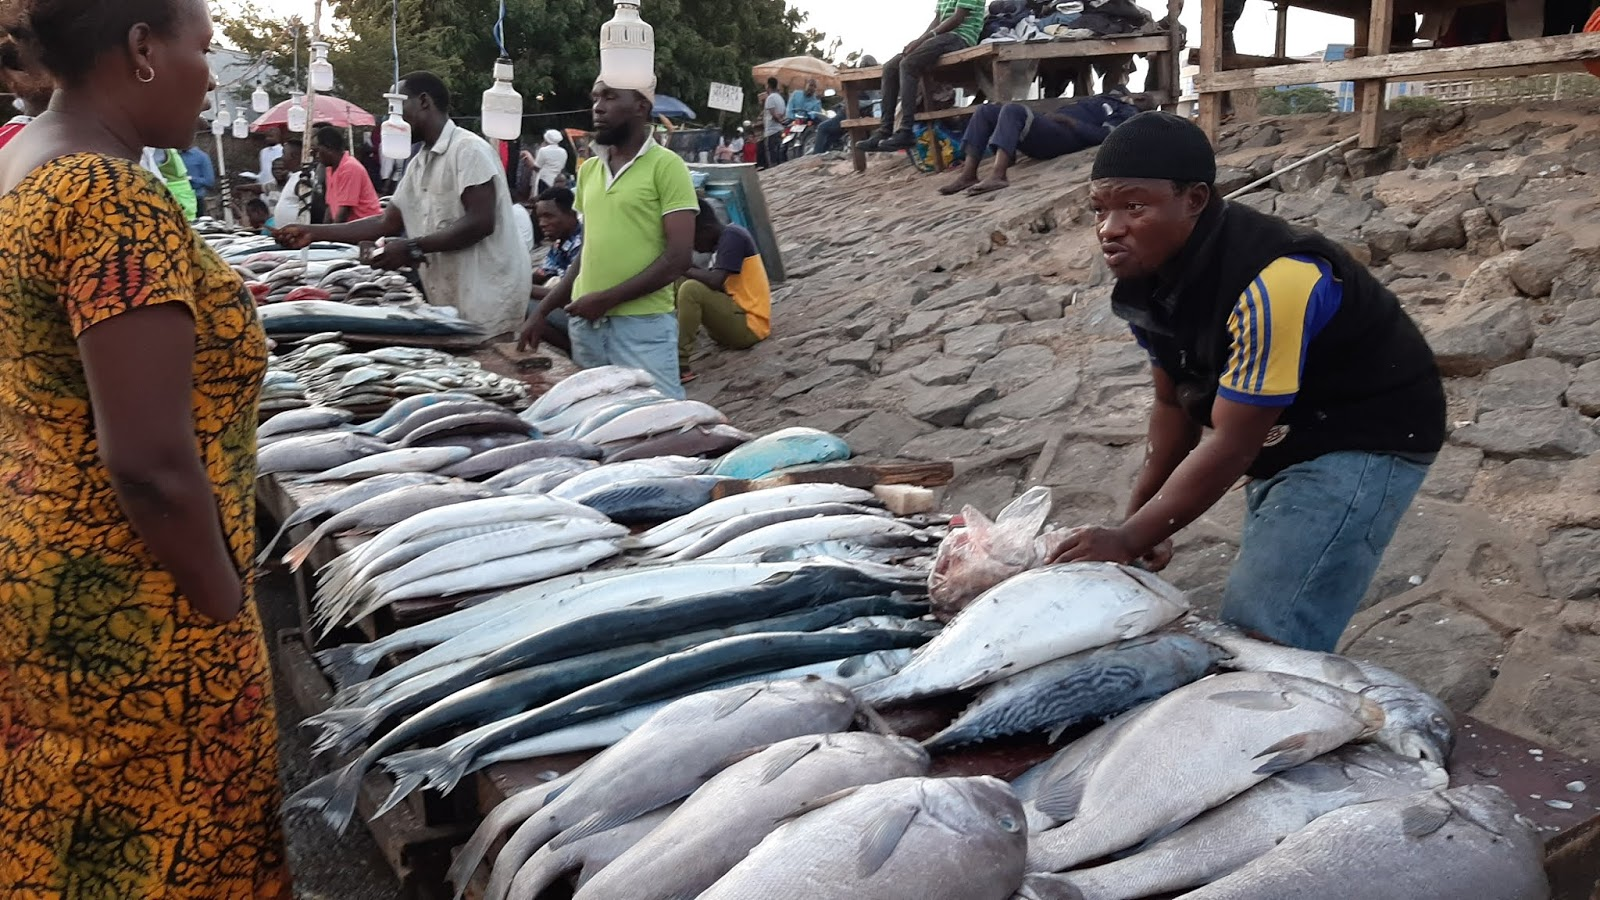 Ferry fish market supply low due to poor fishing tech